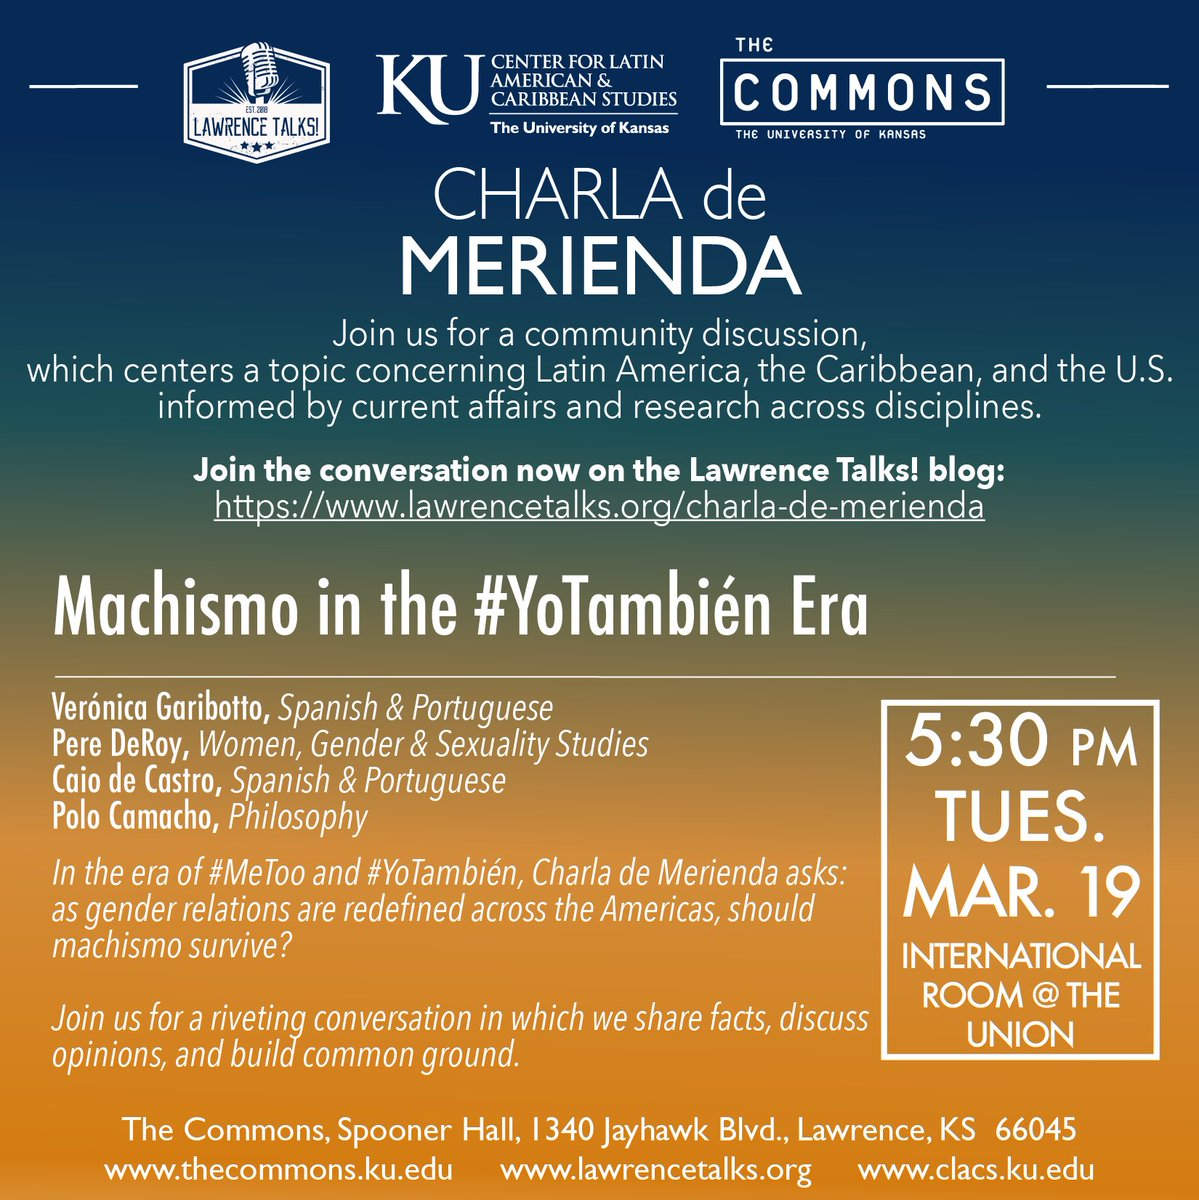 As spring break is coming to a close, there are still some things to look forward to... like this Tuesday! Join us for our second Charla de Merienda of the semester: Machismo in the #YoTambién Era